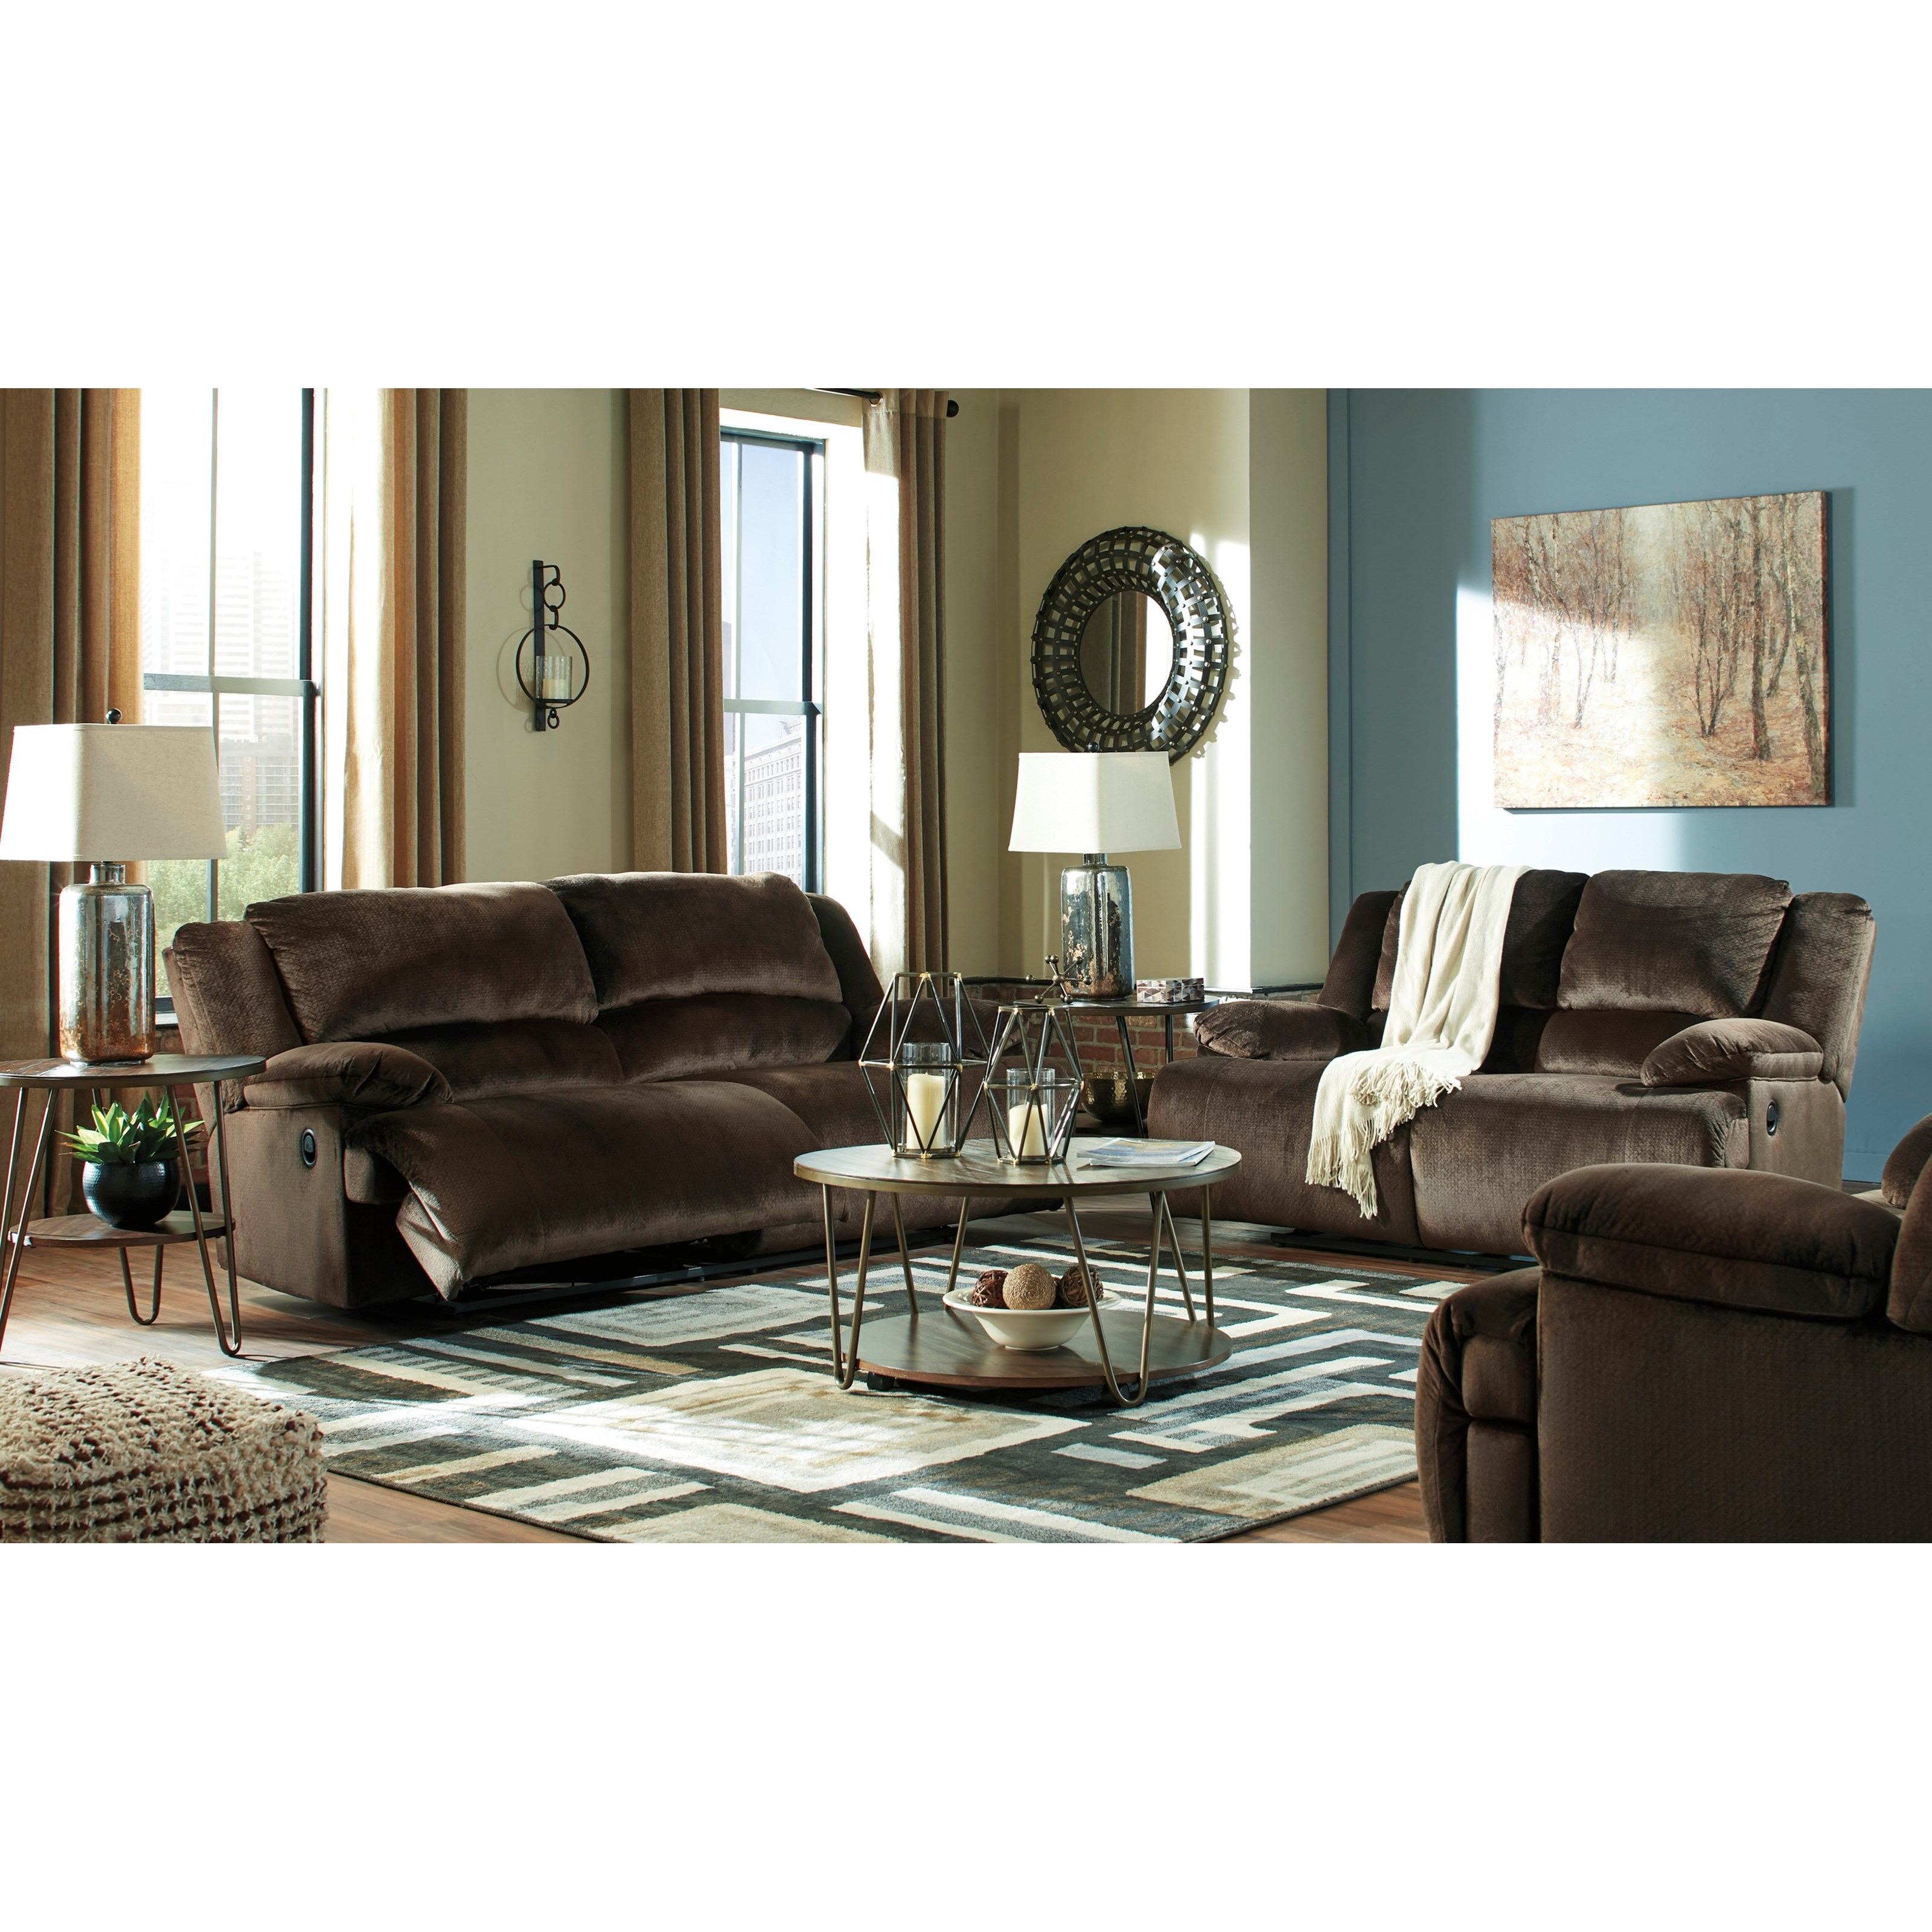 Clonmel Power Reclining Living Room Group by Ashley (Signature Design) at Johnny Janosik